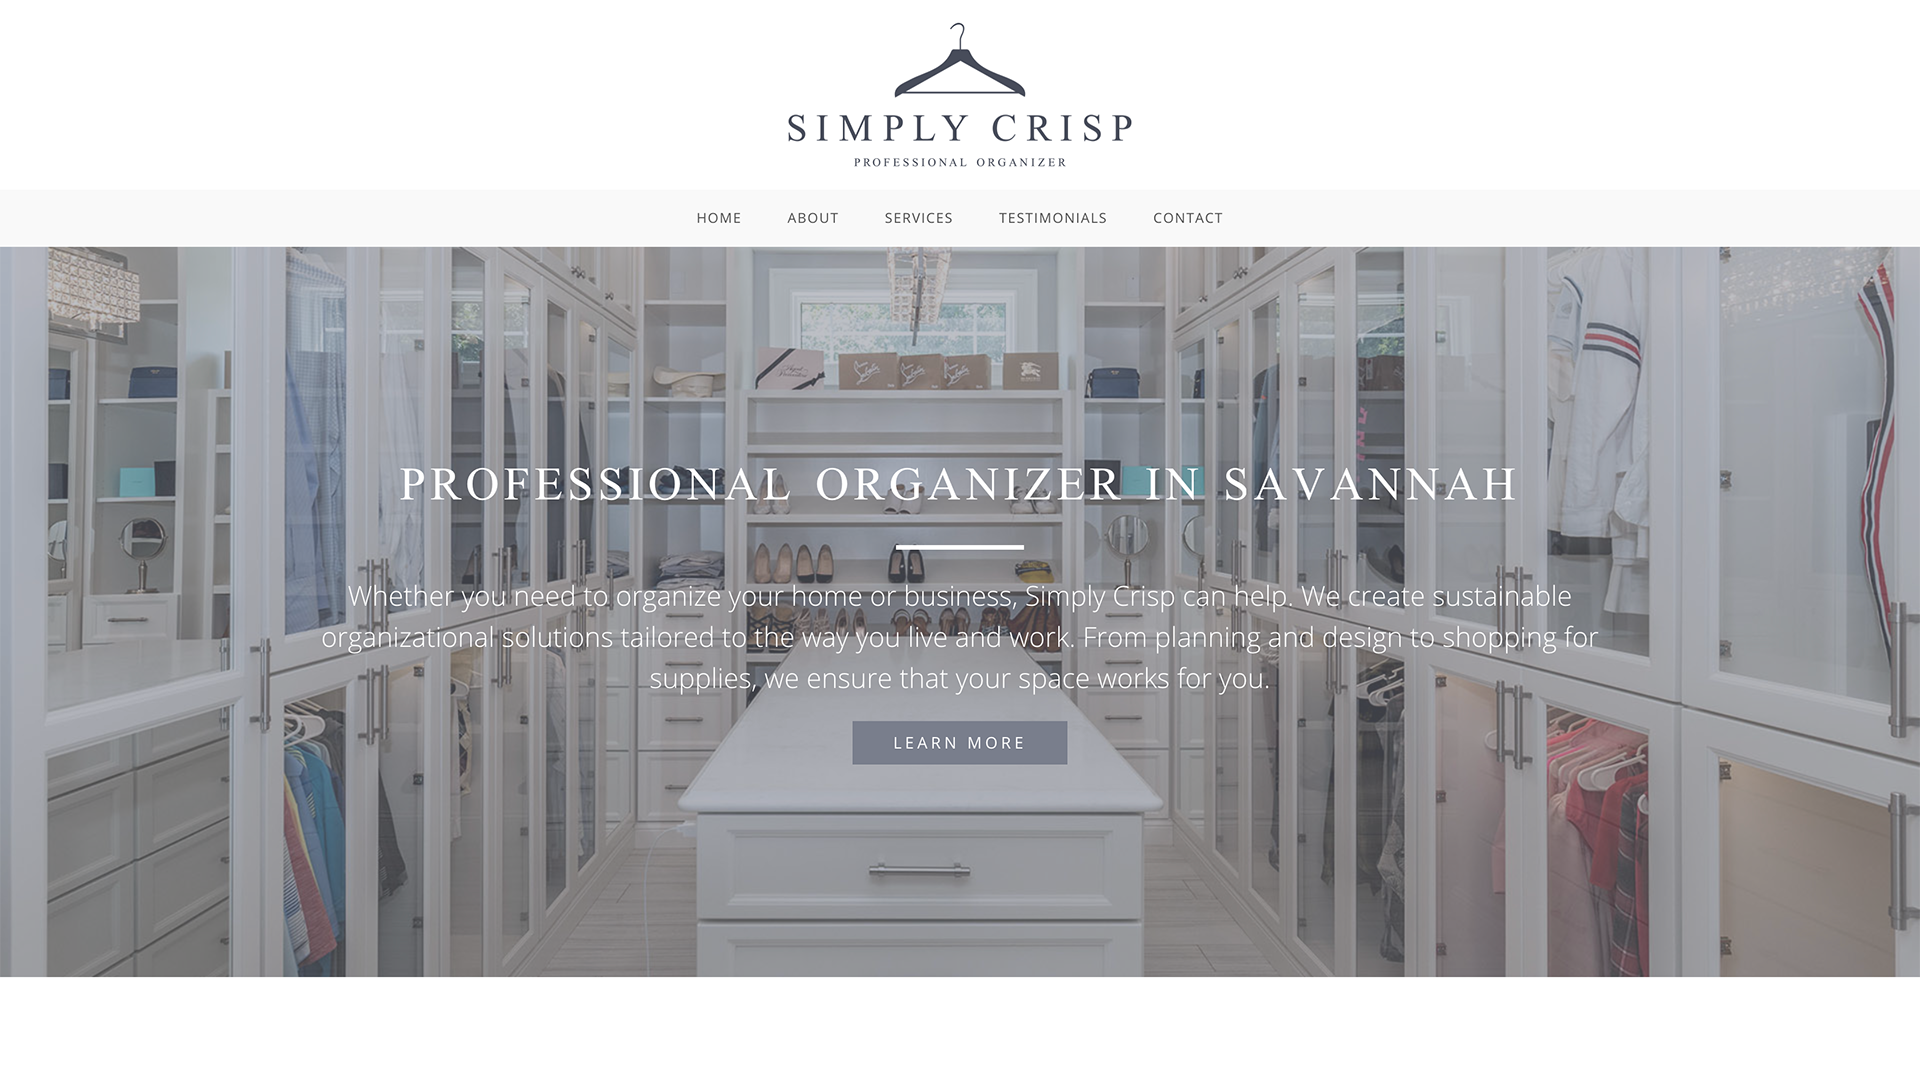 Simply Crisp Website Preview - Lauren Dingus Creative - Savannah, GA